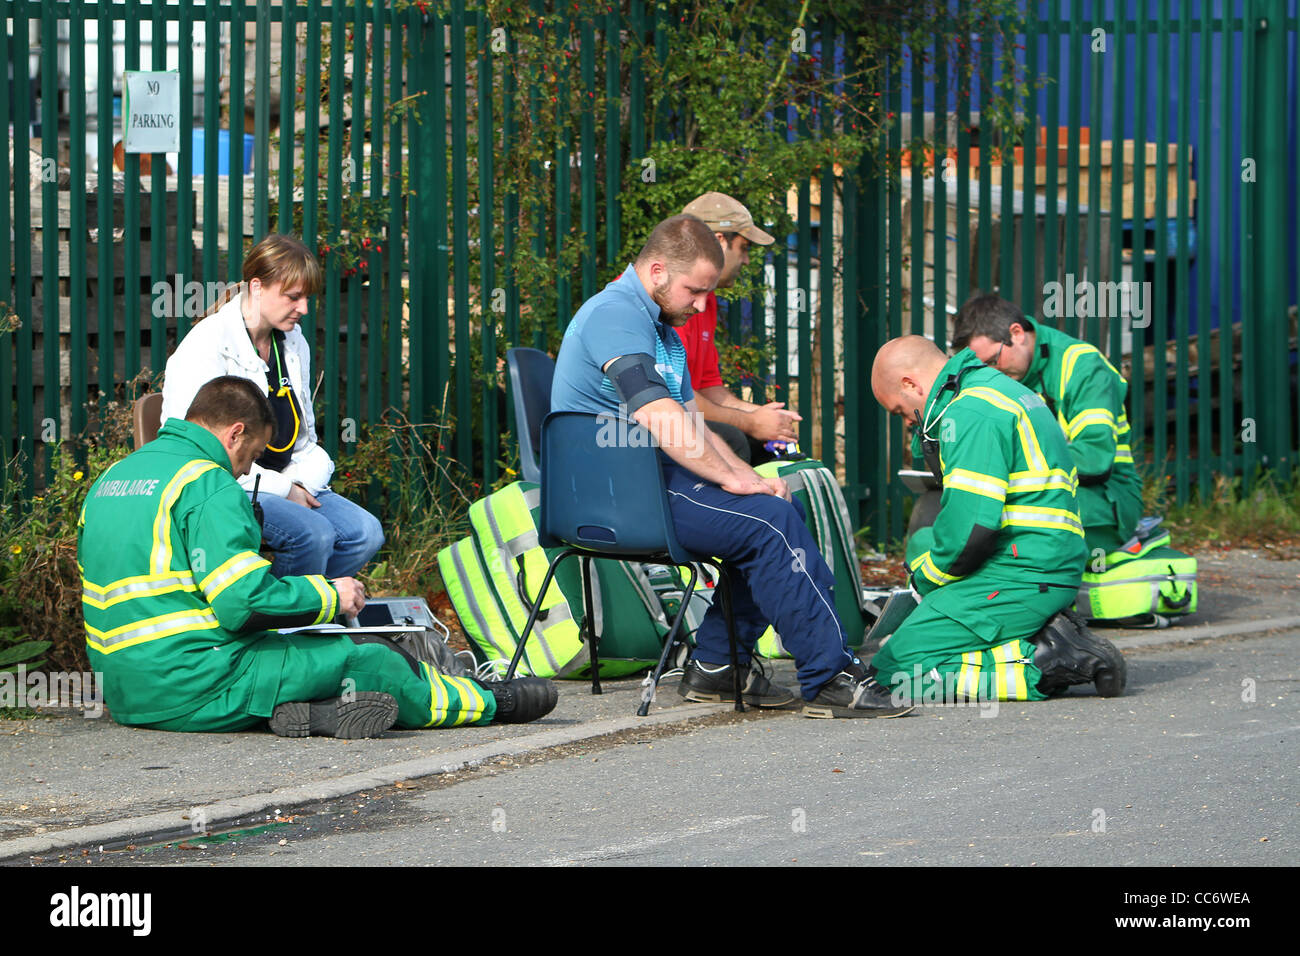 Paramedics from the East Anglian Ambulance Service tend to casualties following a chemical incident in Somersham, - Stock Image